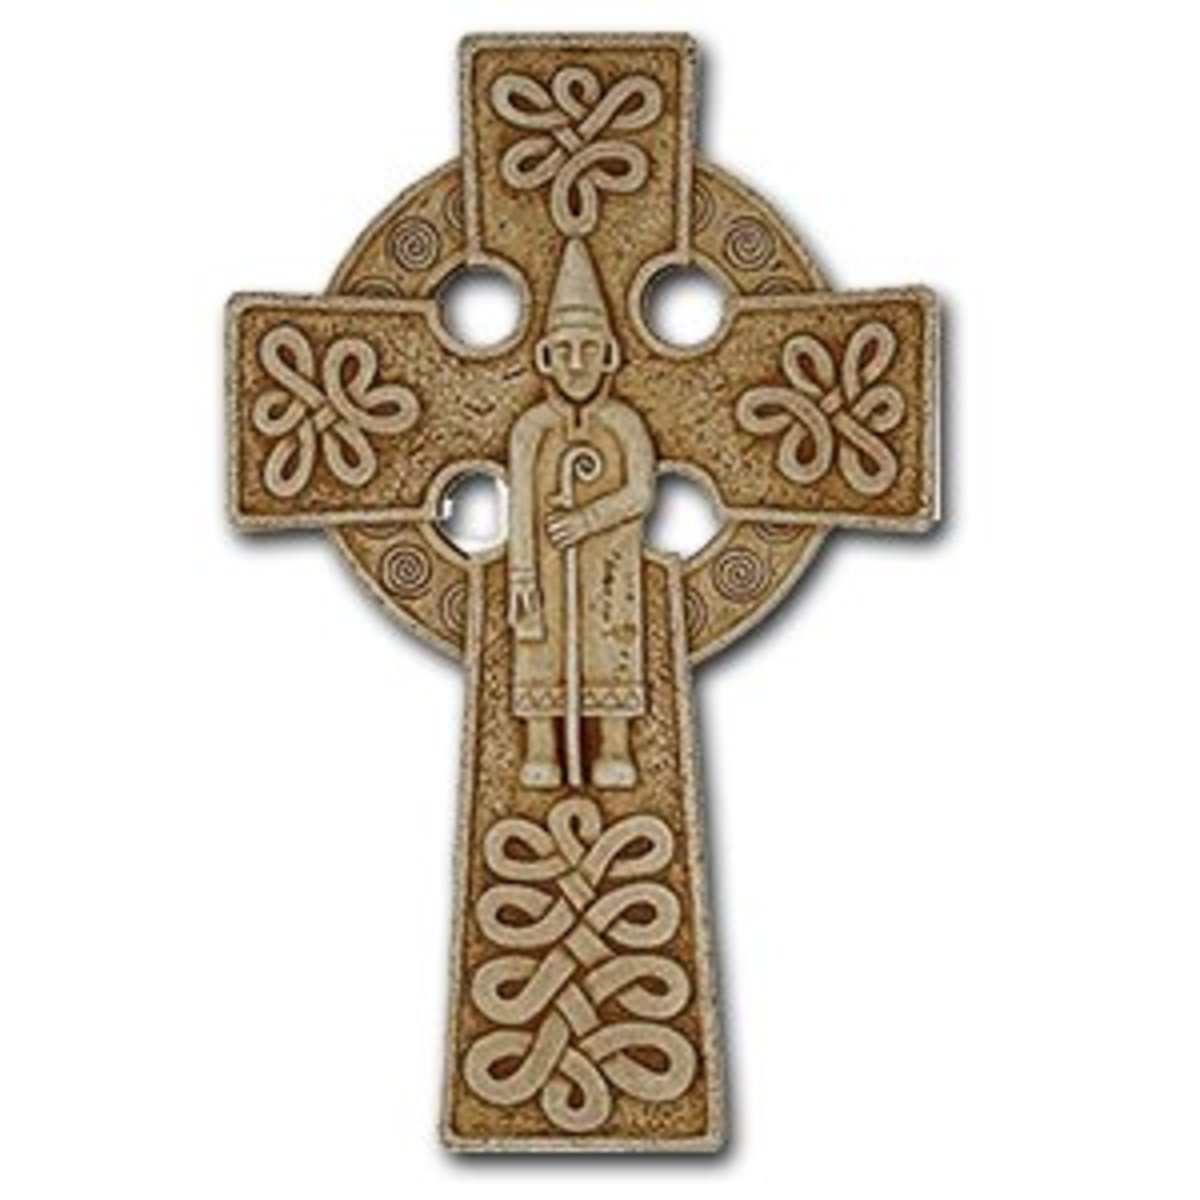 Celtic crosses have long been used as popular grave markers, but today they are often used to beautifully decorate homes or add a little Irish pride to an outfit.